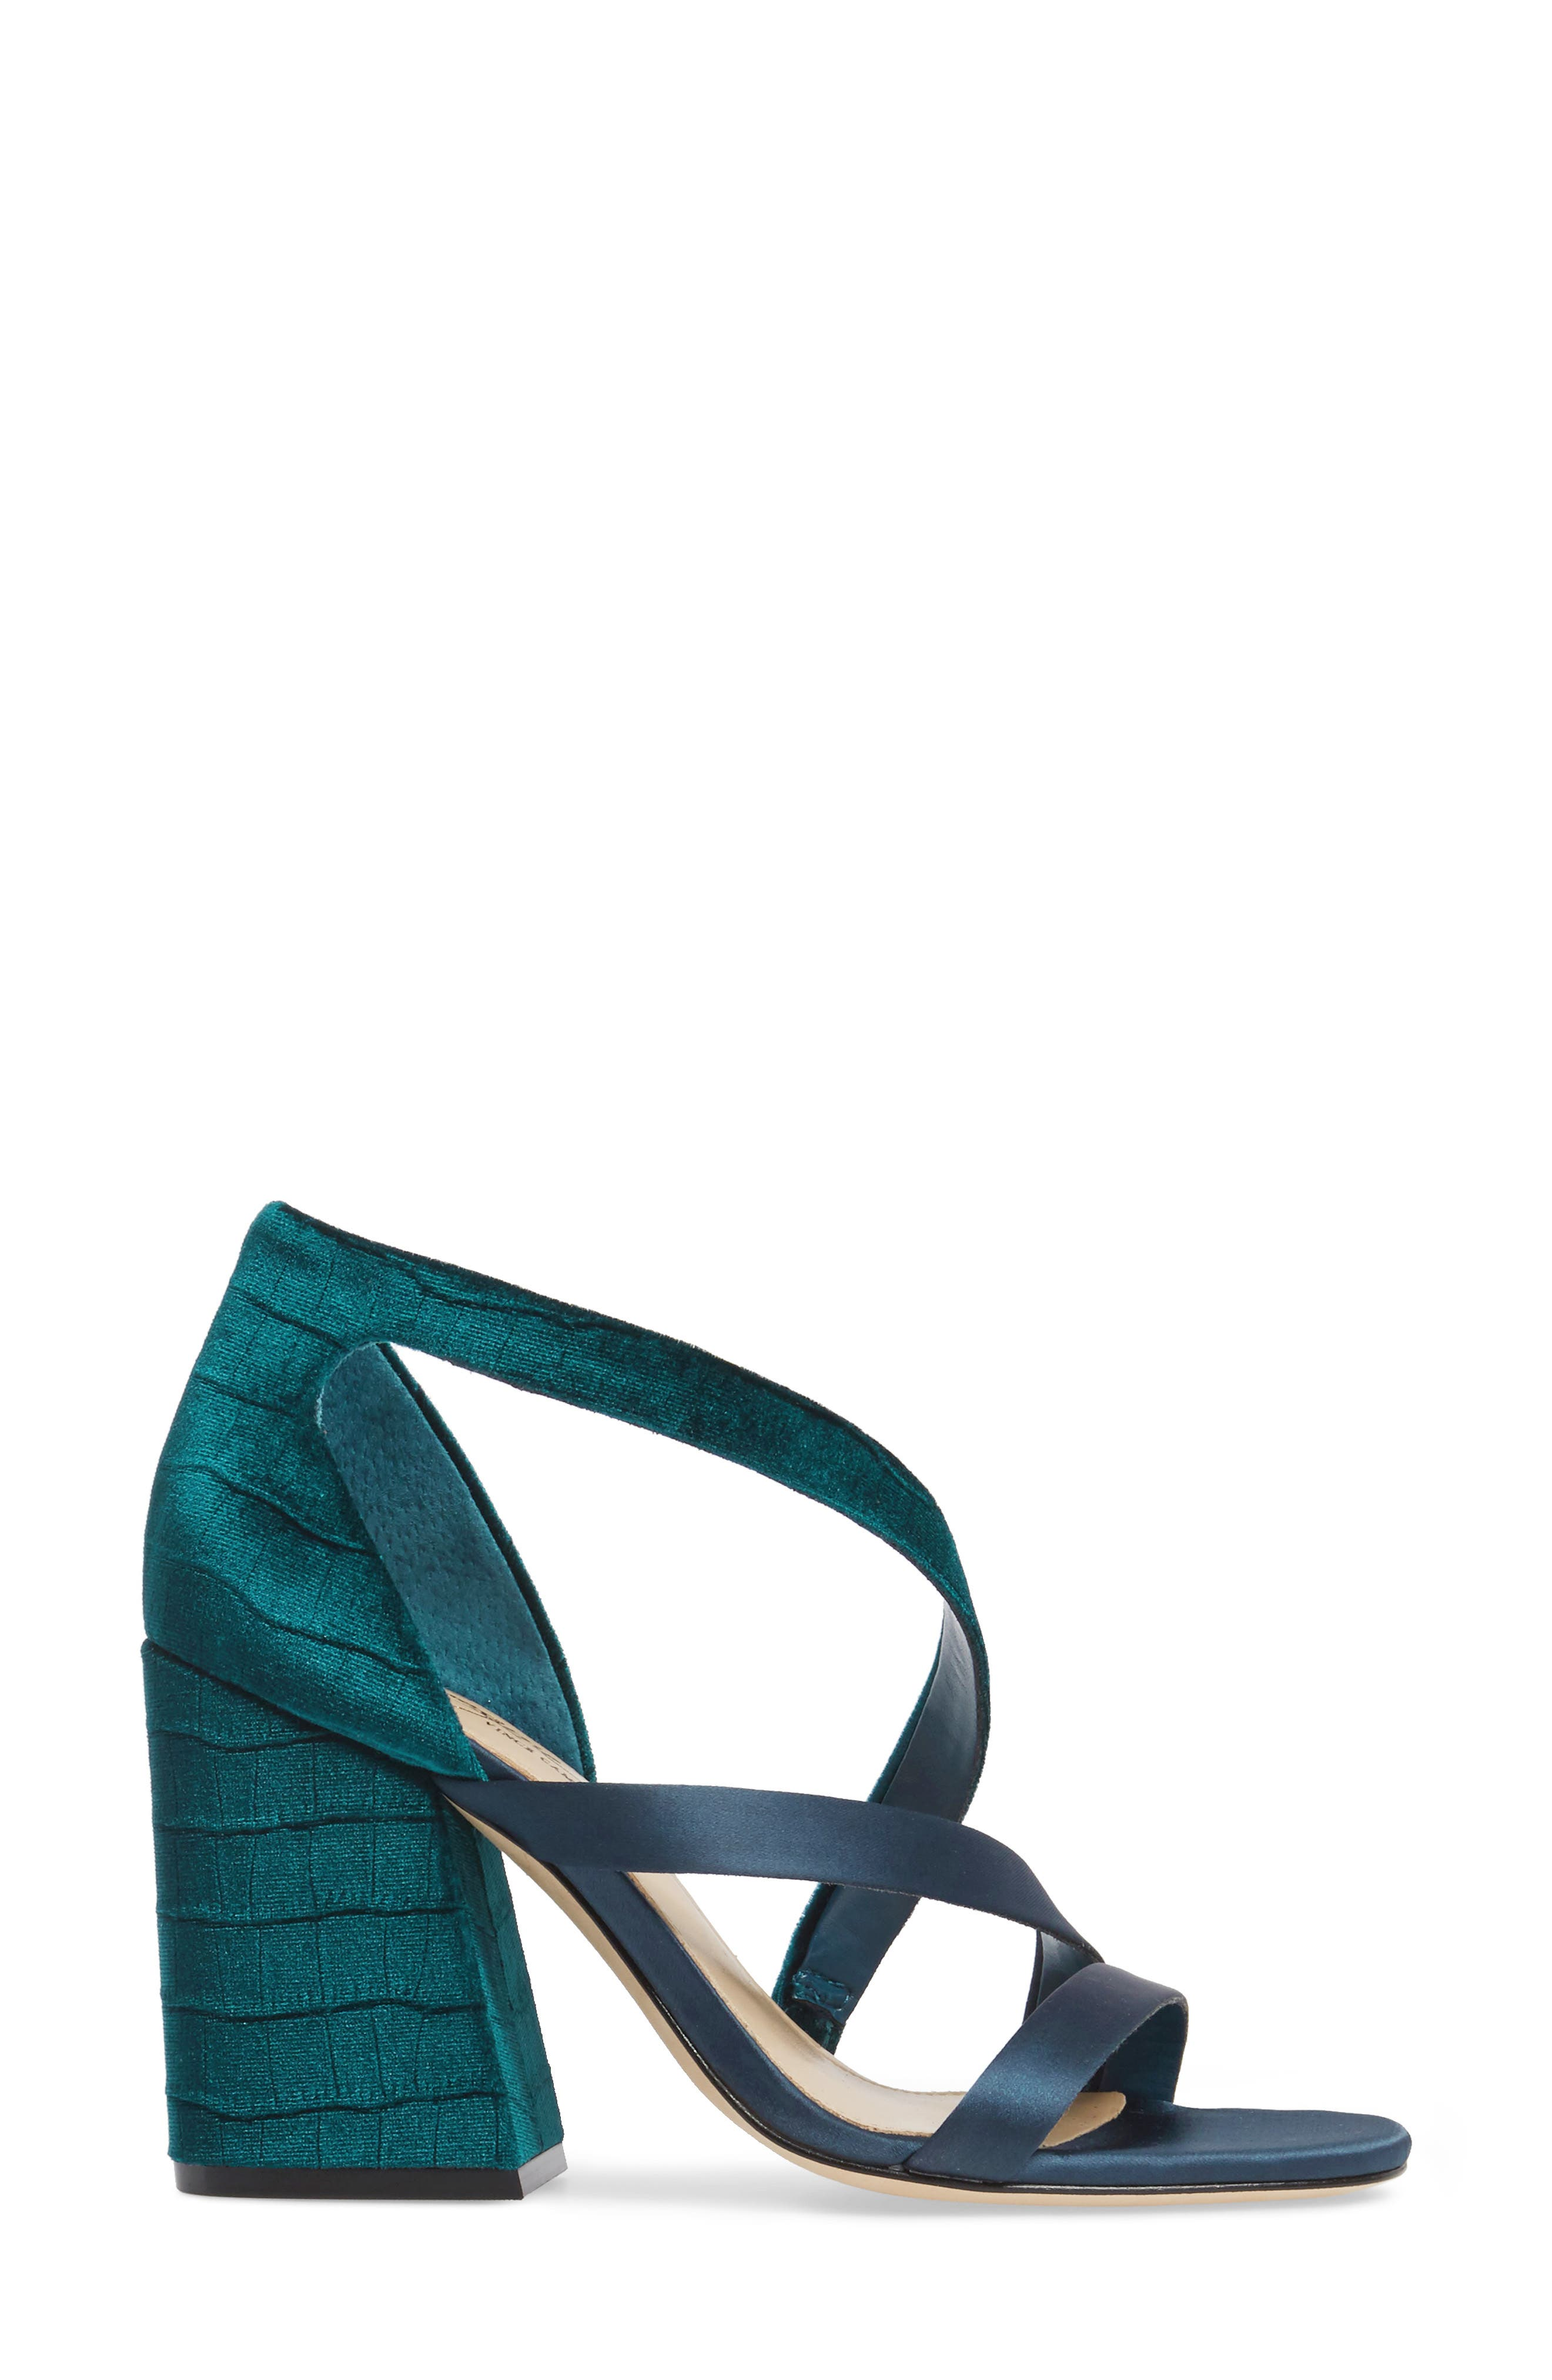 Alternate Image 3  - Imagine by Vince Camuto Abi Sandal (Women)